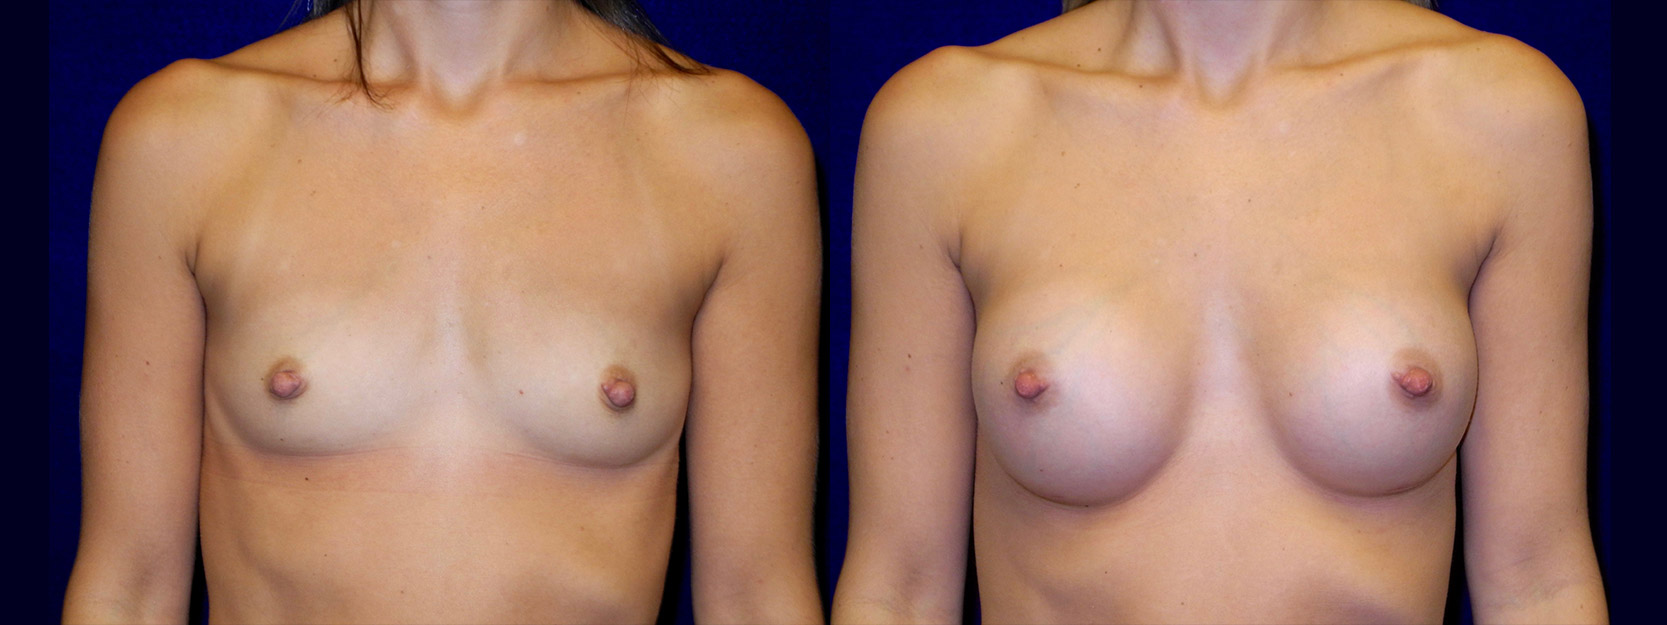 Frontal View - Breast Augmentation - Silicone Implants